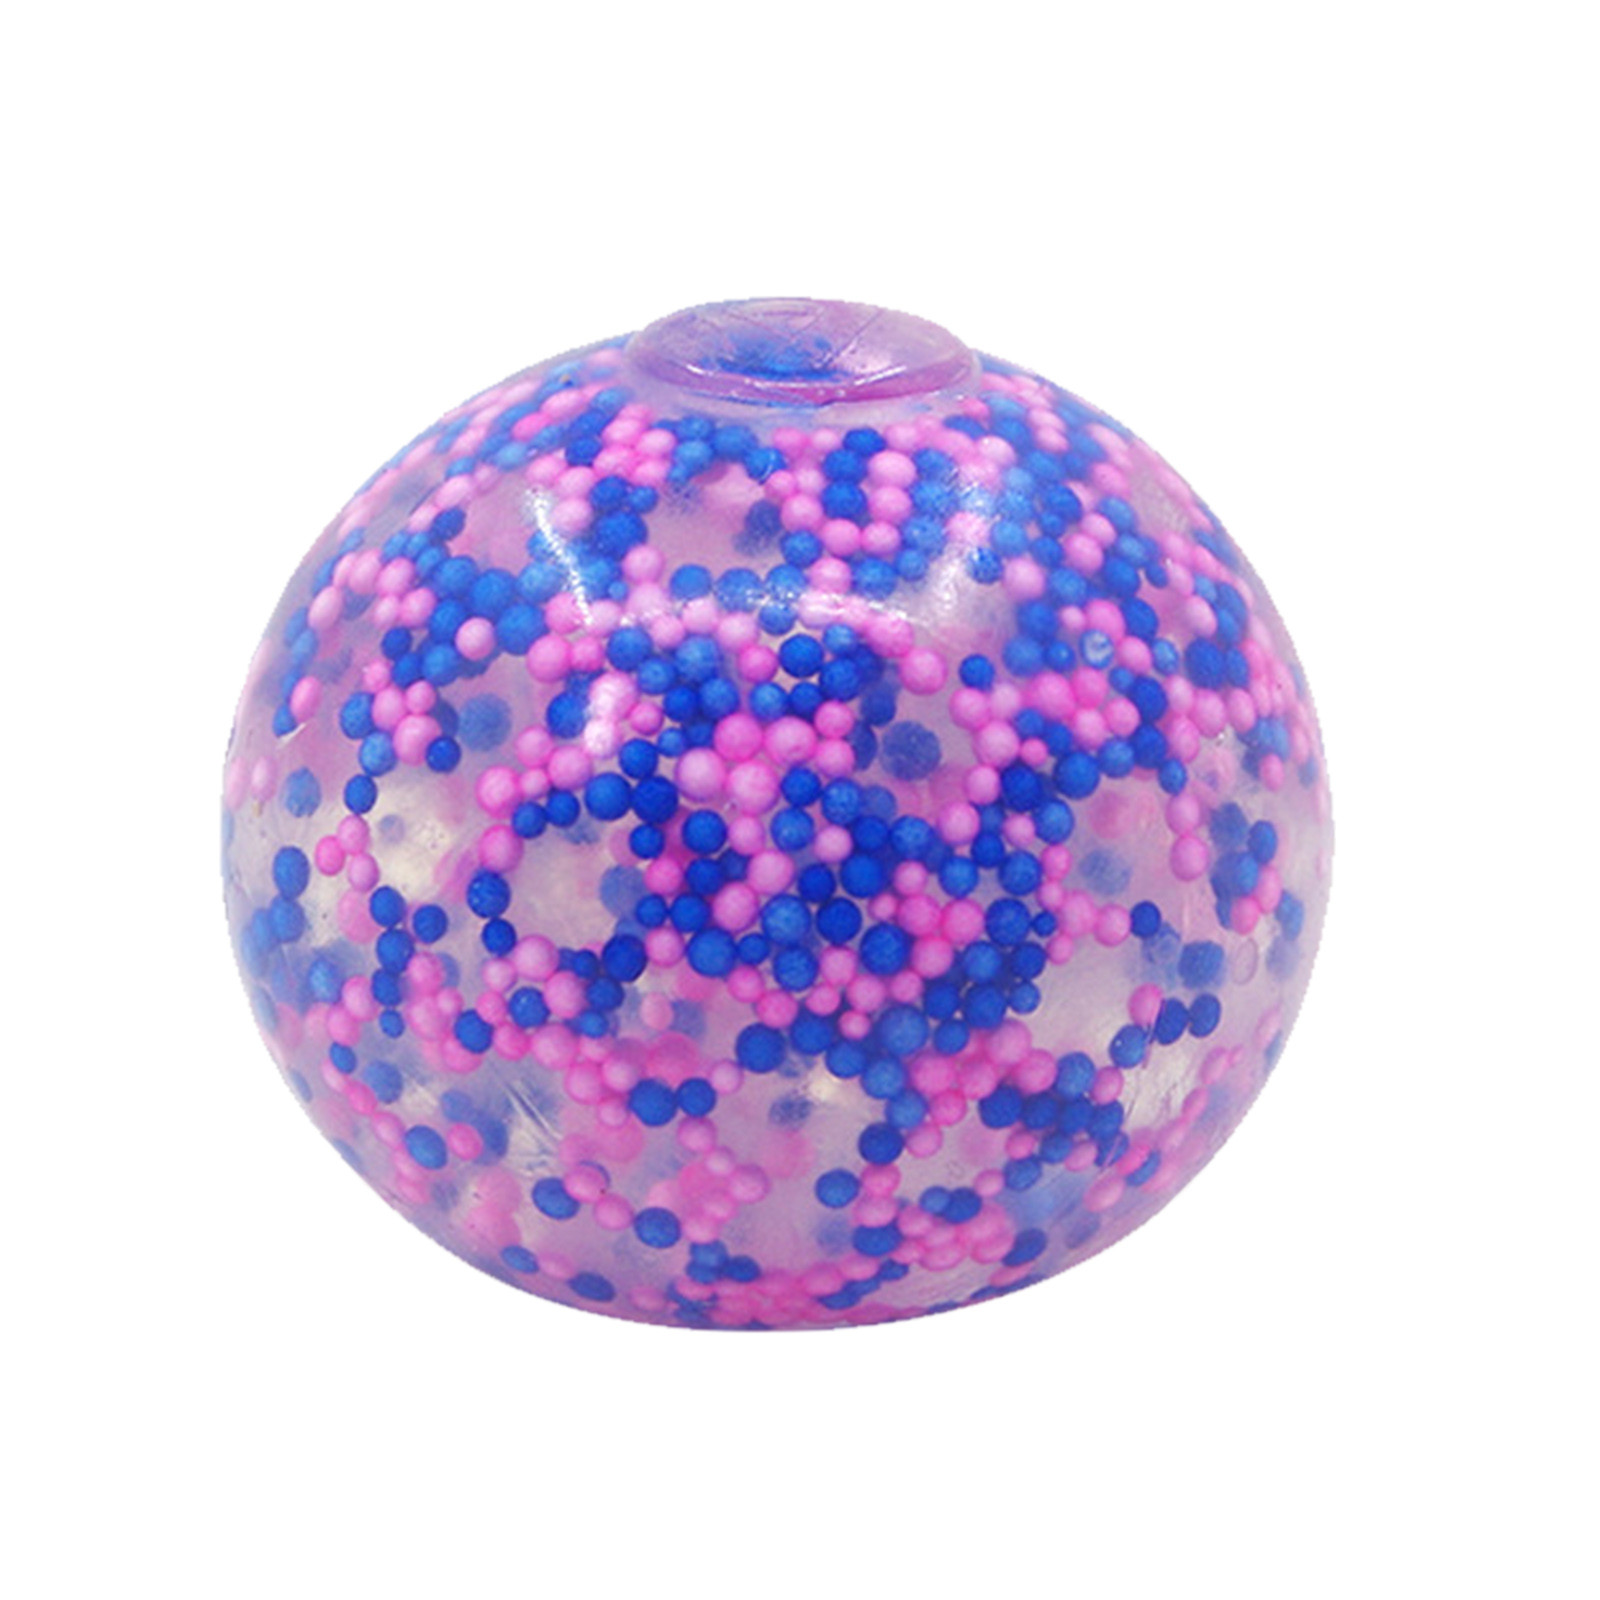 Decompression Dna Color Ball For Kids Adults 1/2pc Stress Relief Balls Exercise Hand img5